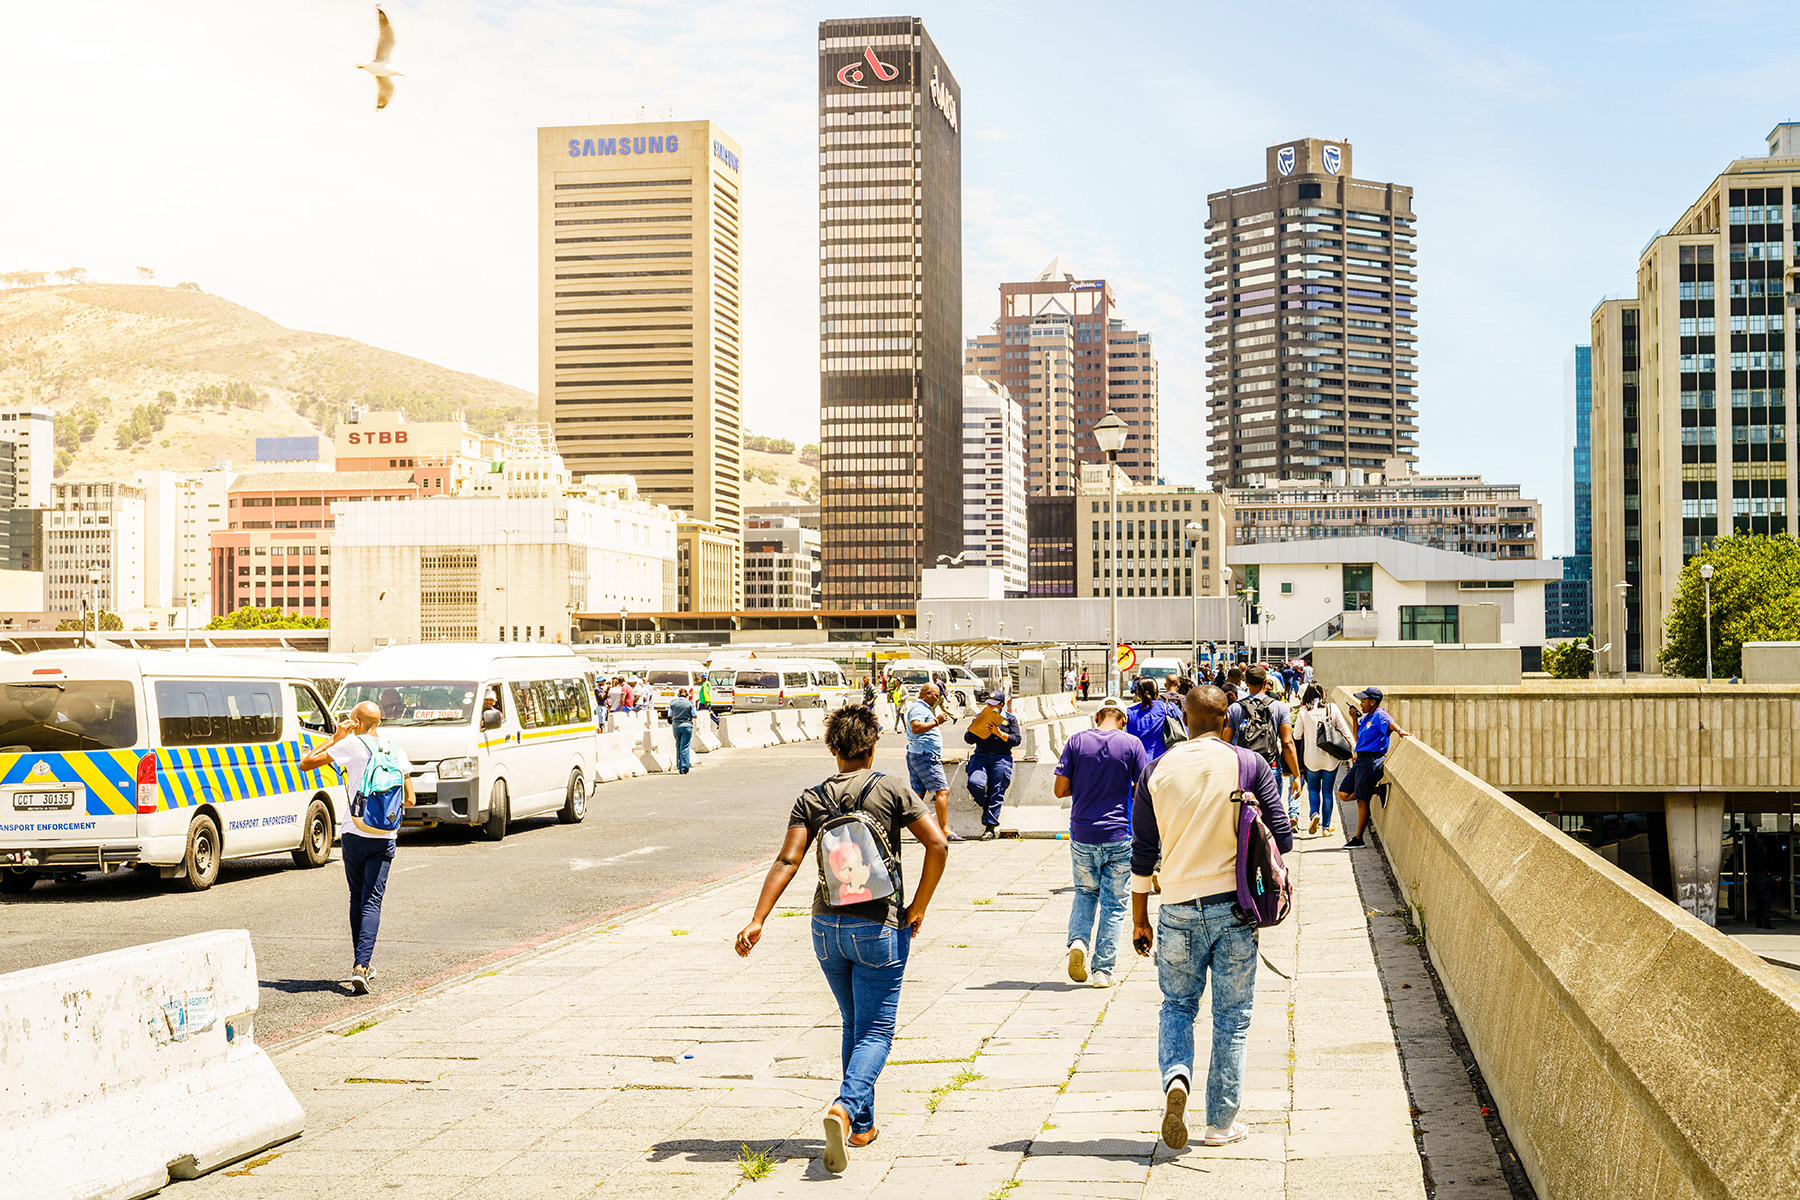 Commuters in Cape Town